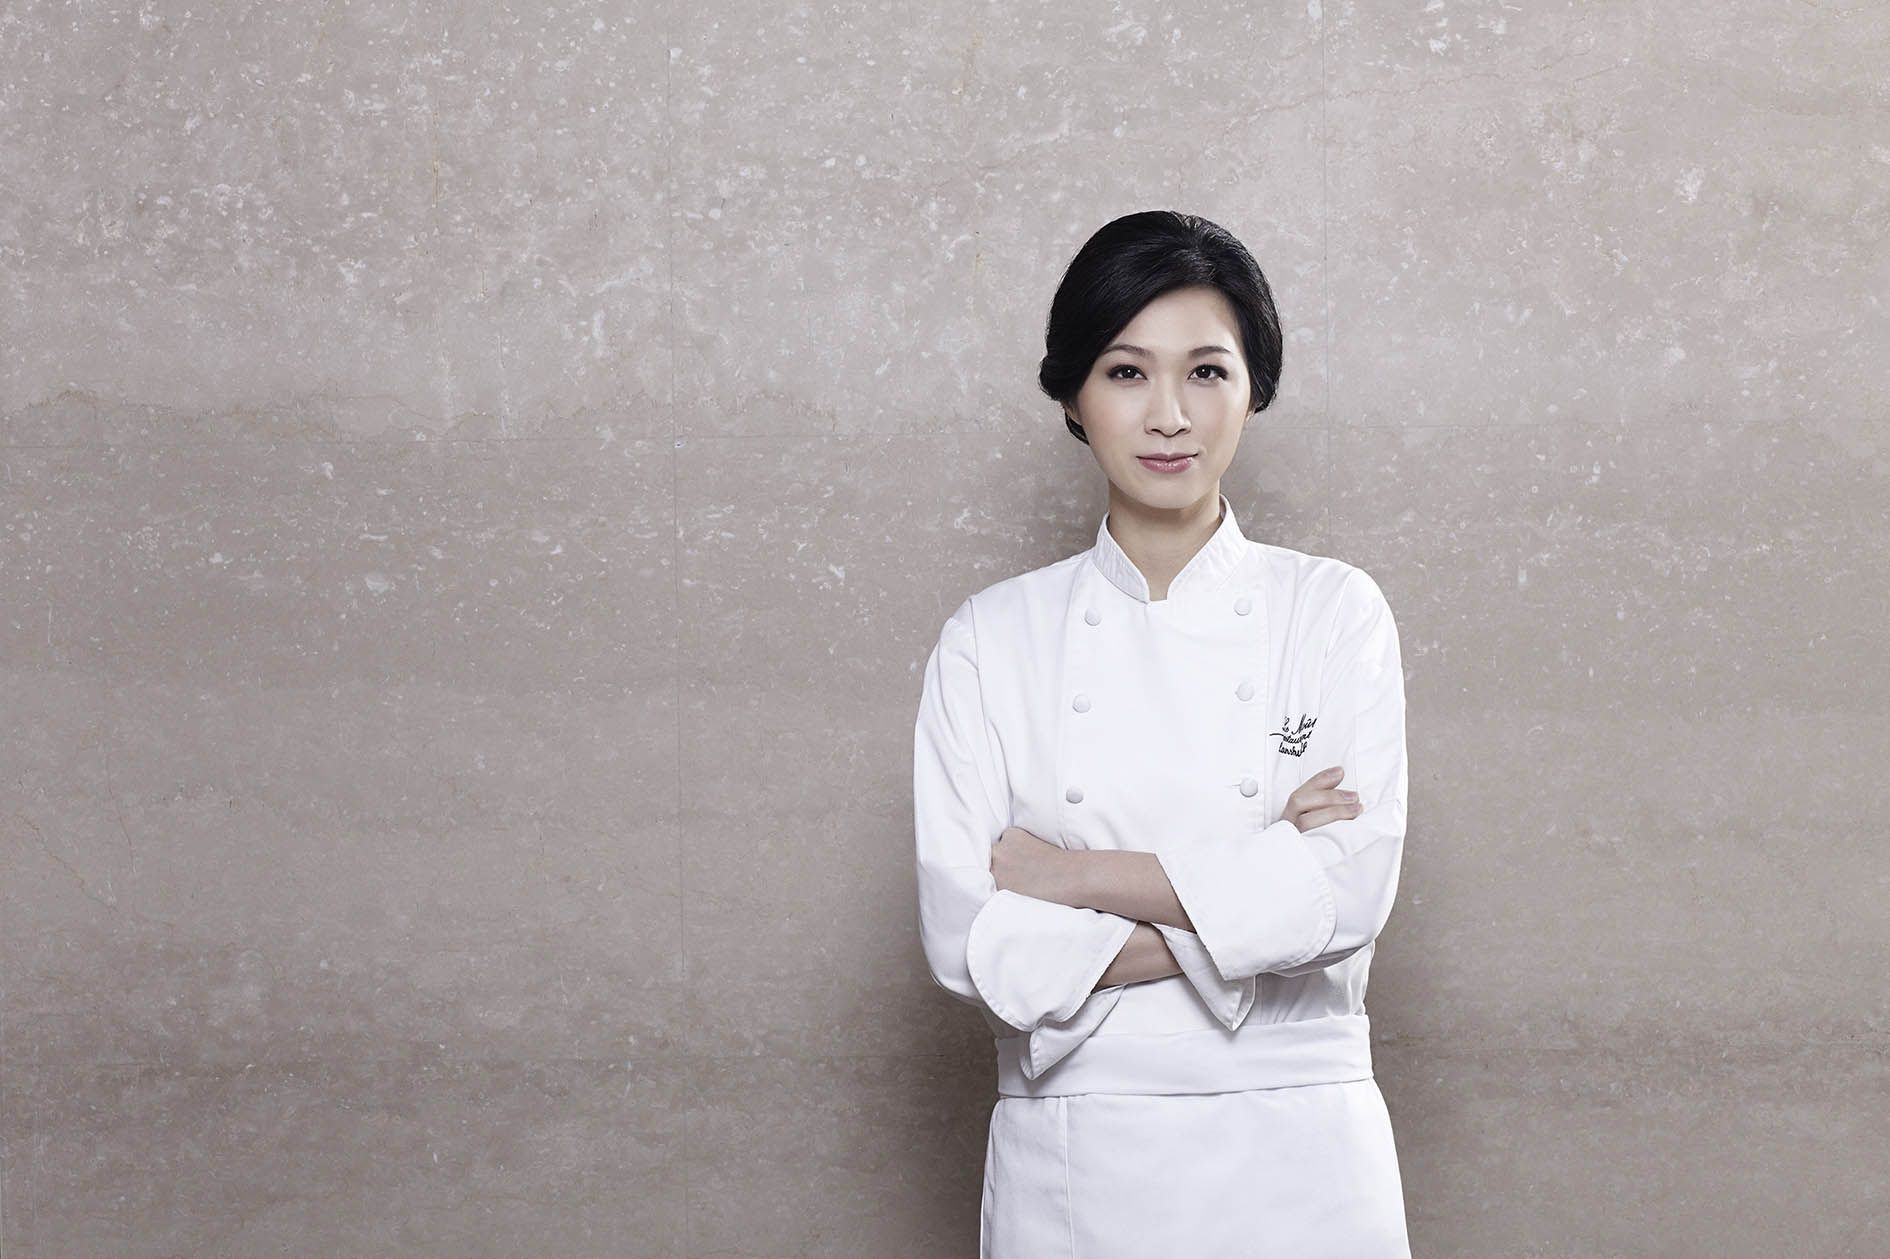 Running A World Class Restaurant Grew Too Demanding, Says Asia's Top Female Chef